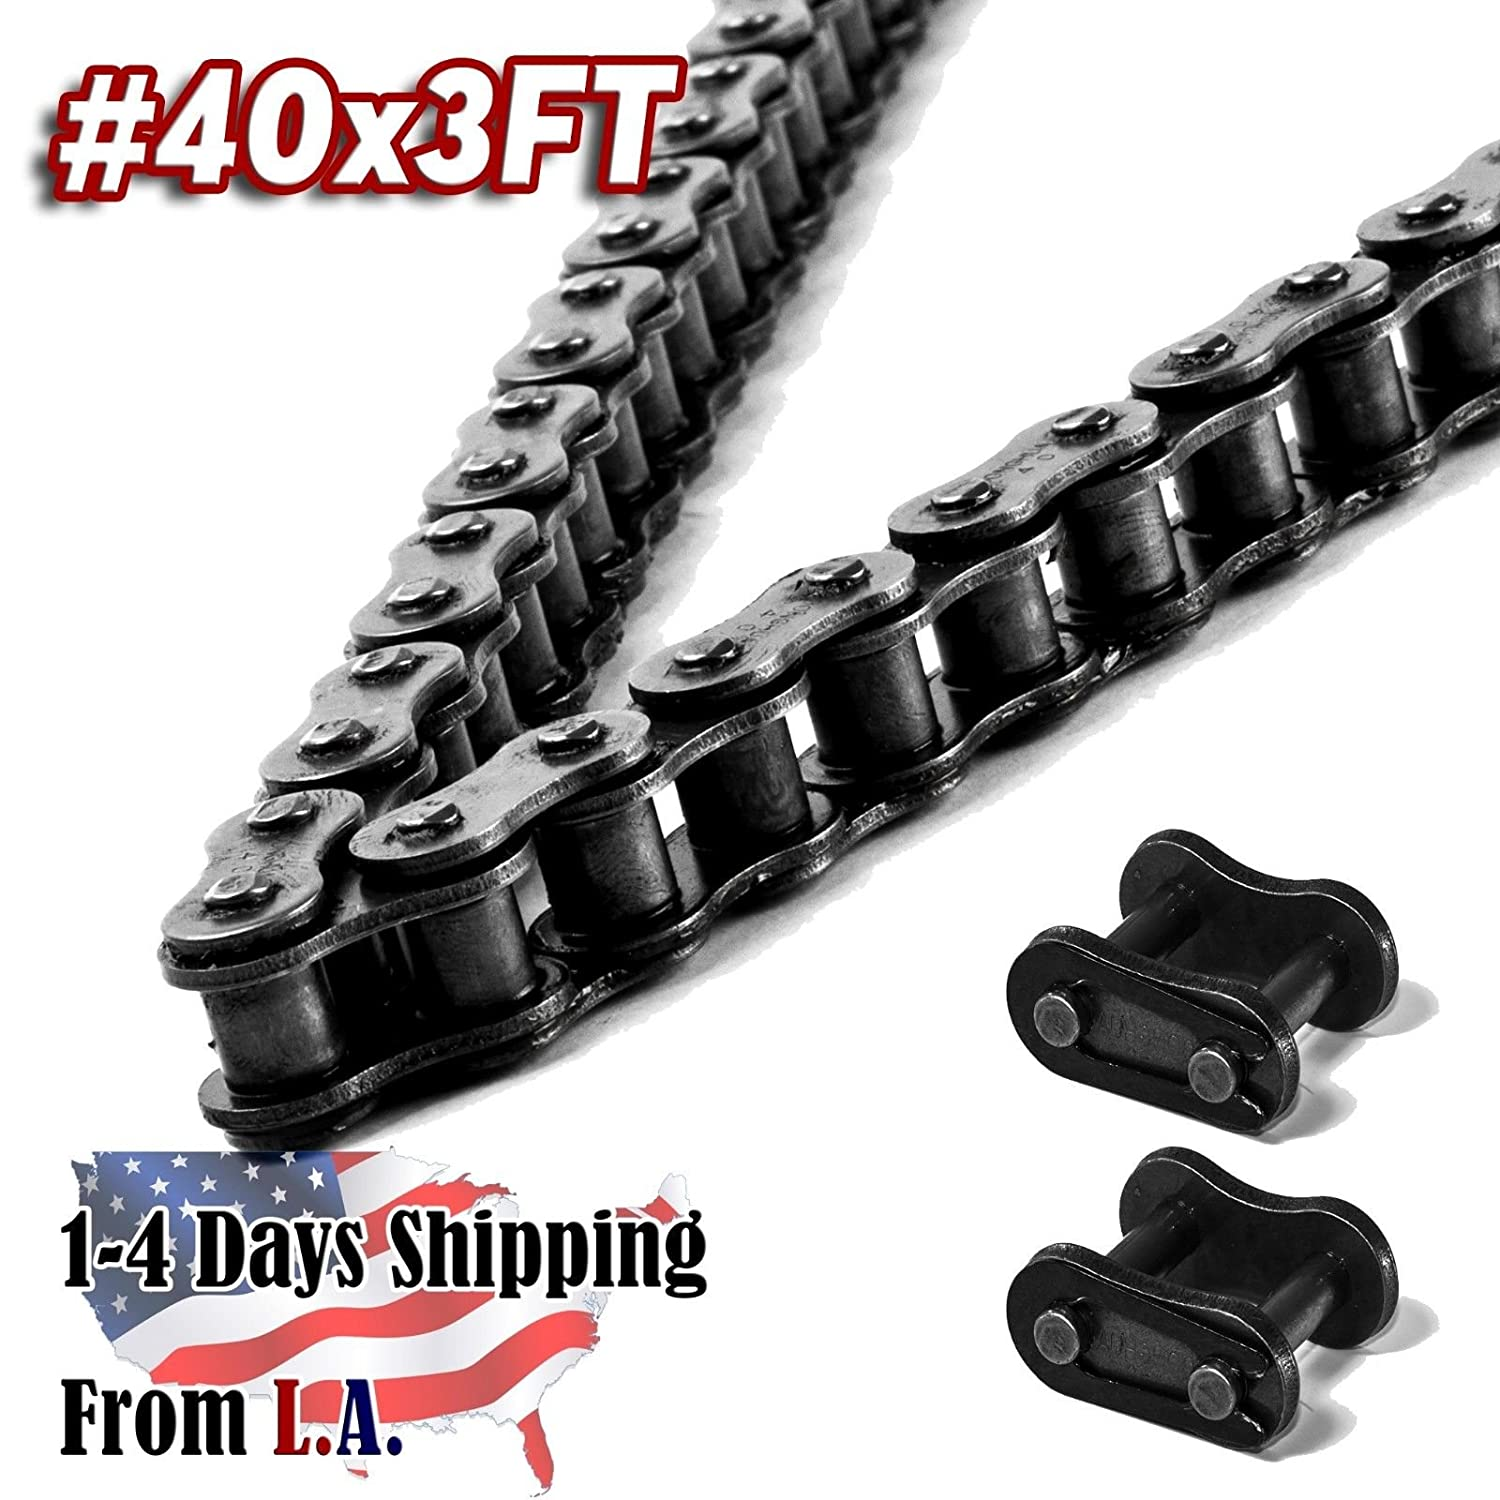 Standard Clip Connecting Master Links for 60 Chain Qty 4